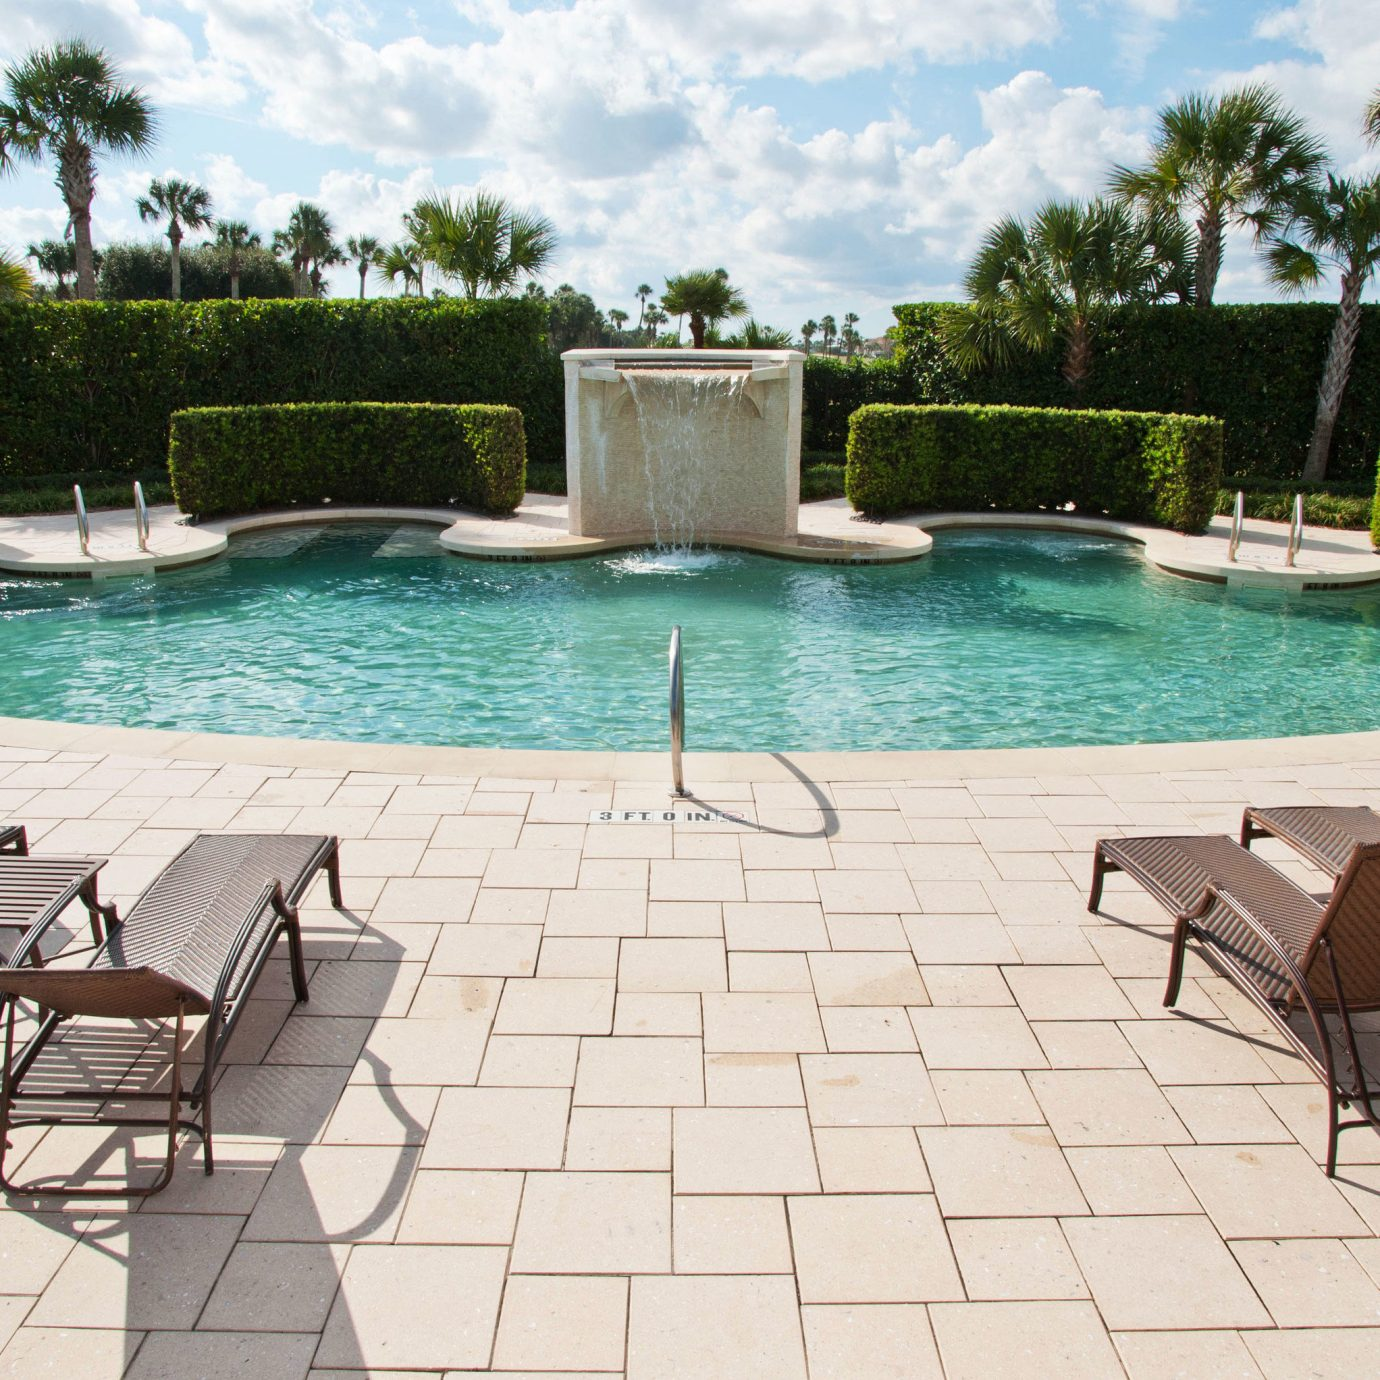 tree sky chair ground swimming pool property leisure backyard Villa lawn outdoor structure Patio Pool condominium yard cottage Deck